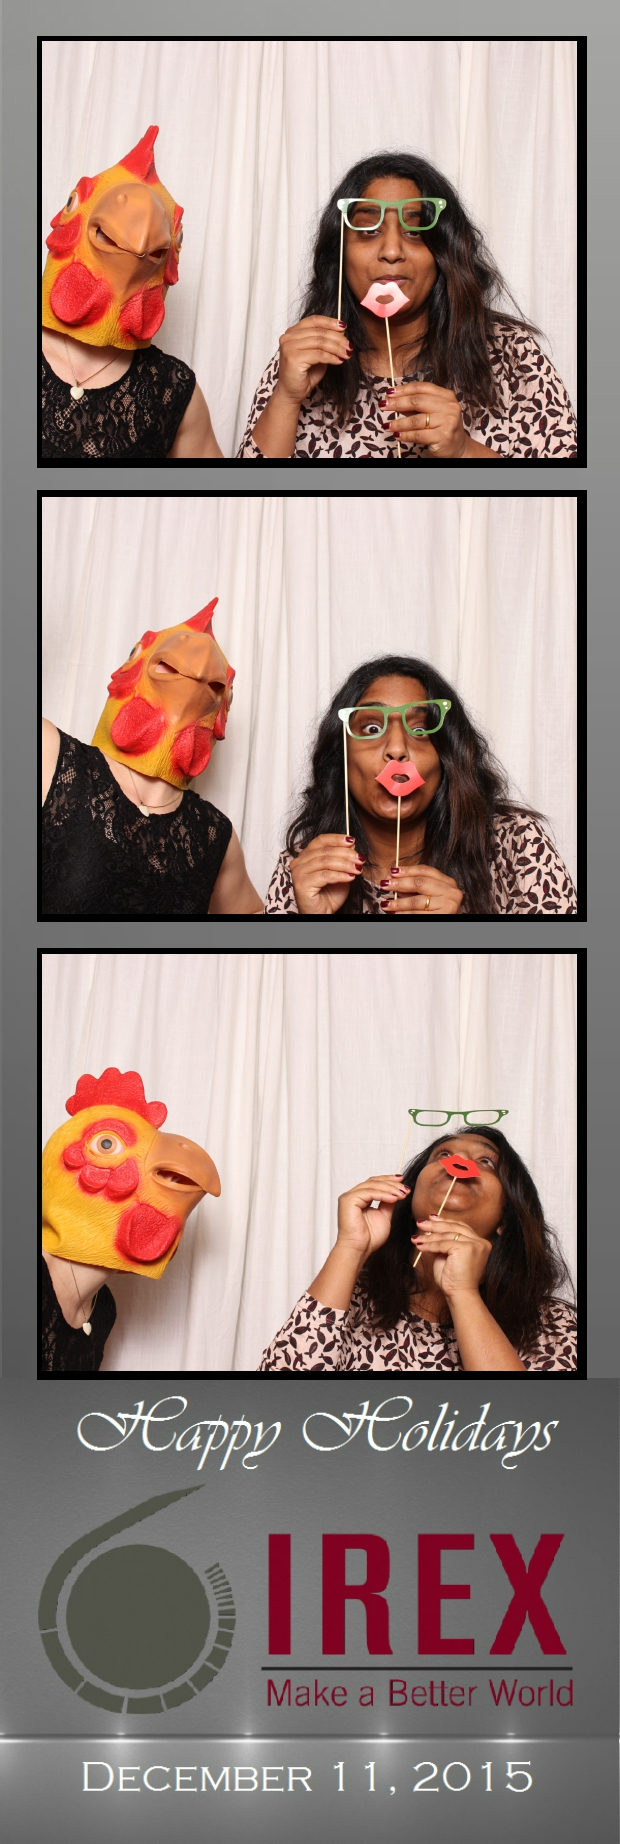 Guest House Events Photo Booth Strips IREX (1).jpg